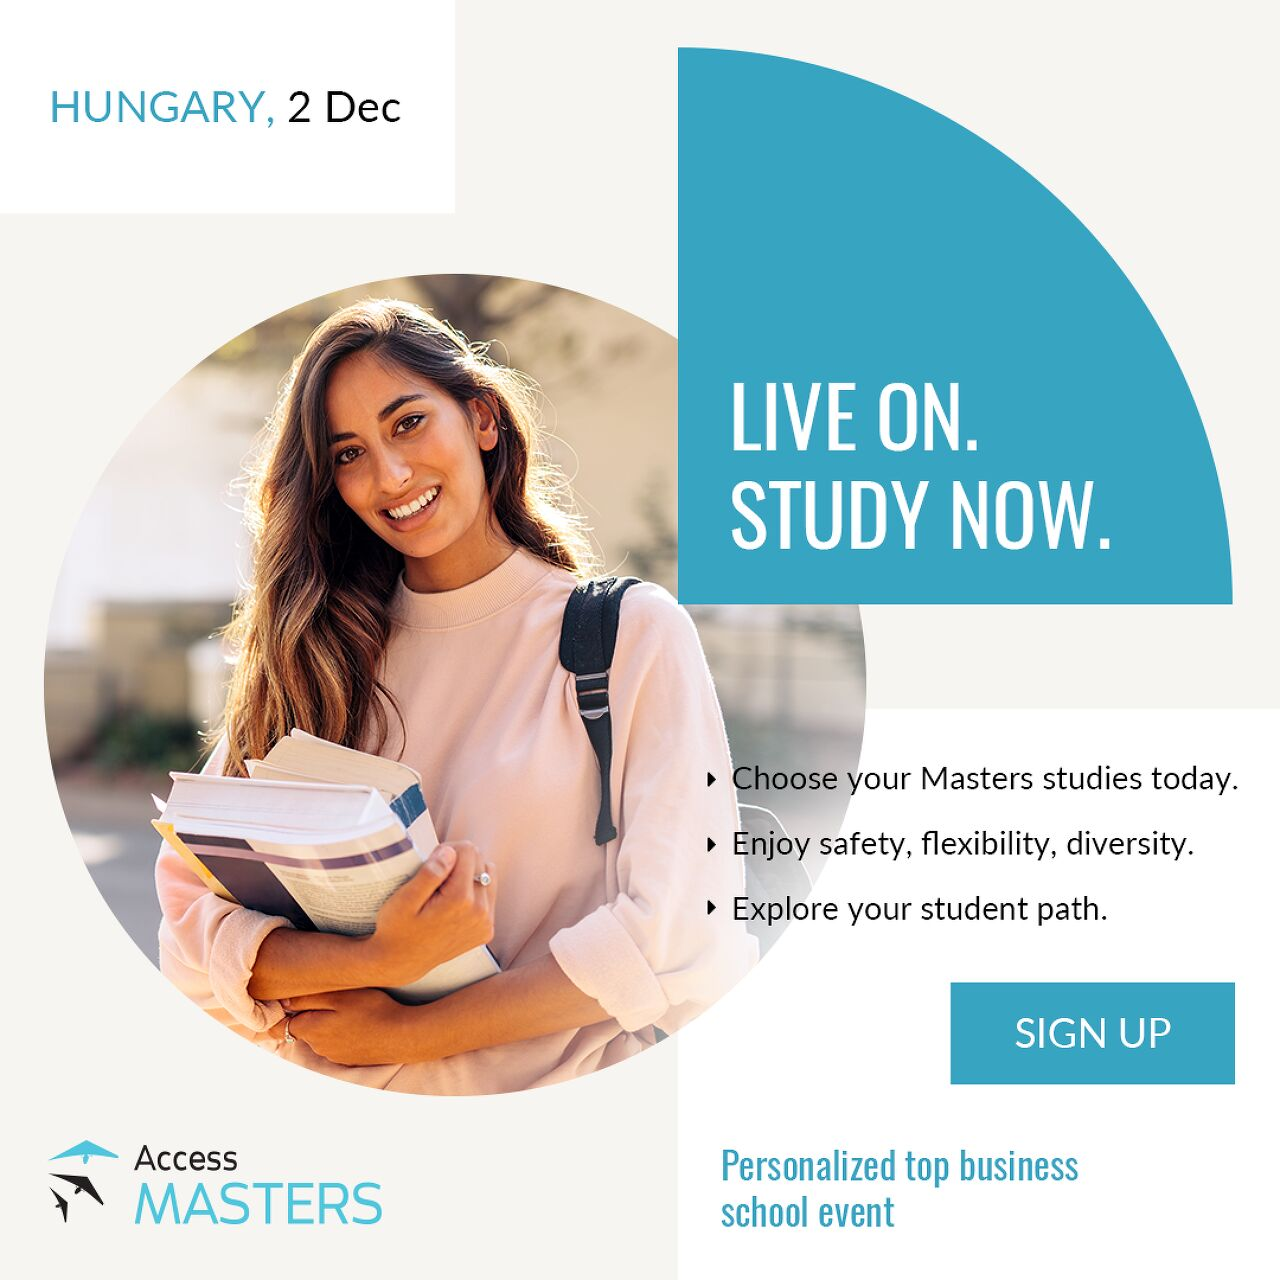 Meet top-ranked universities online at the Hungary Access Masters Online Event in December!